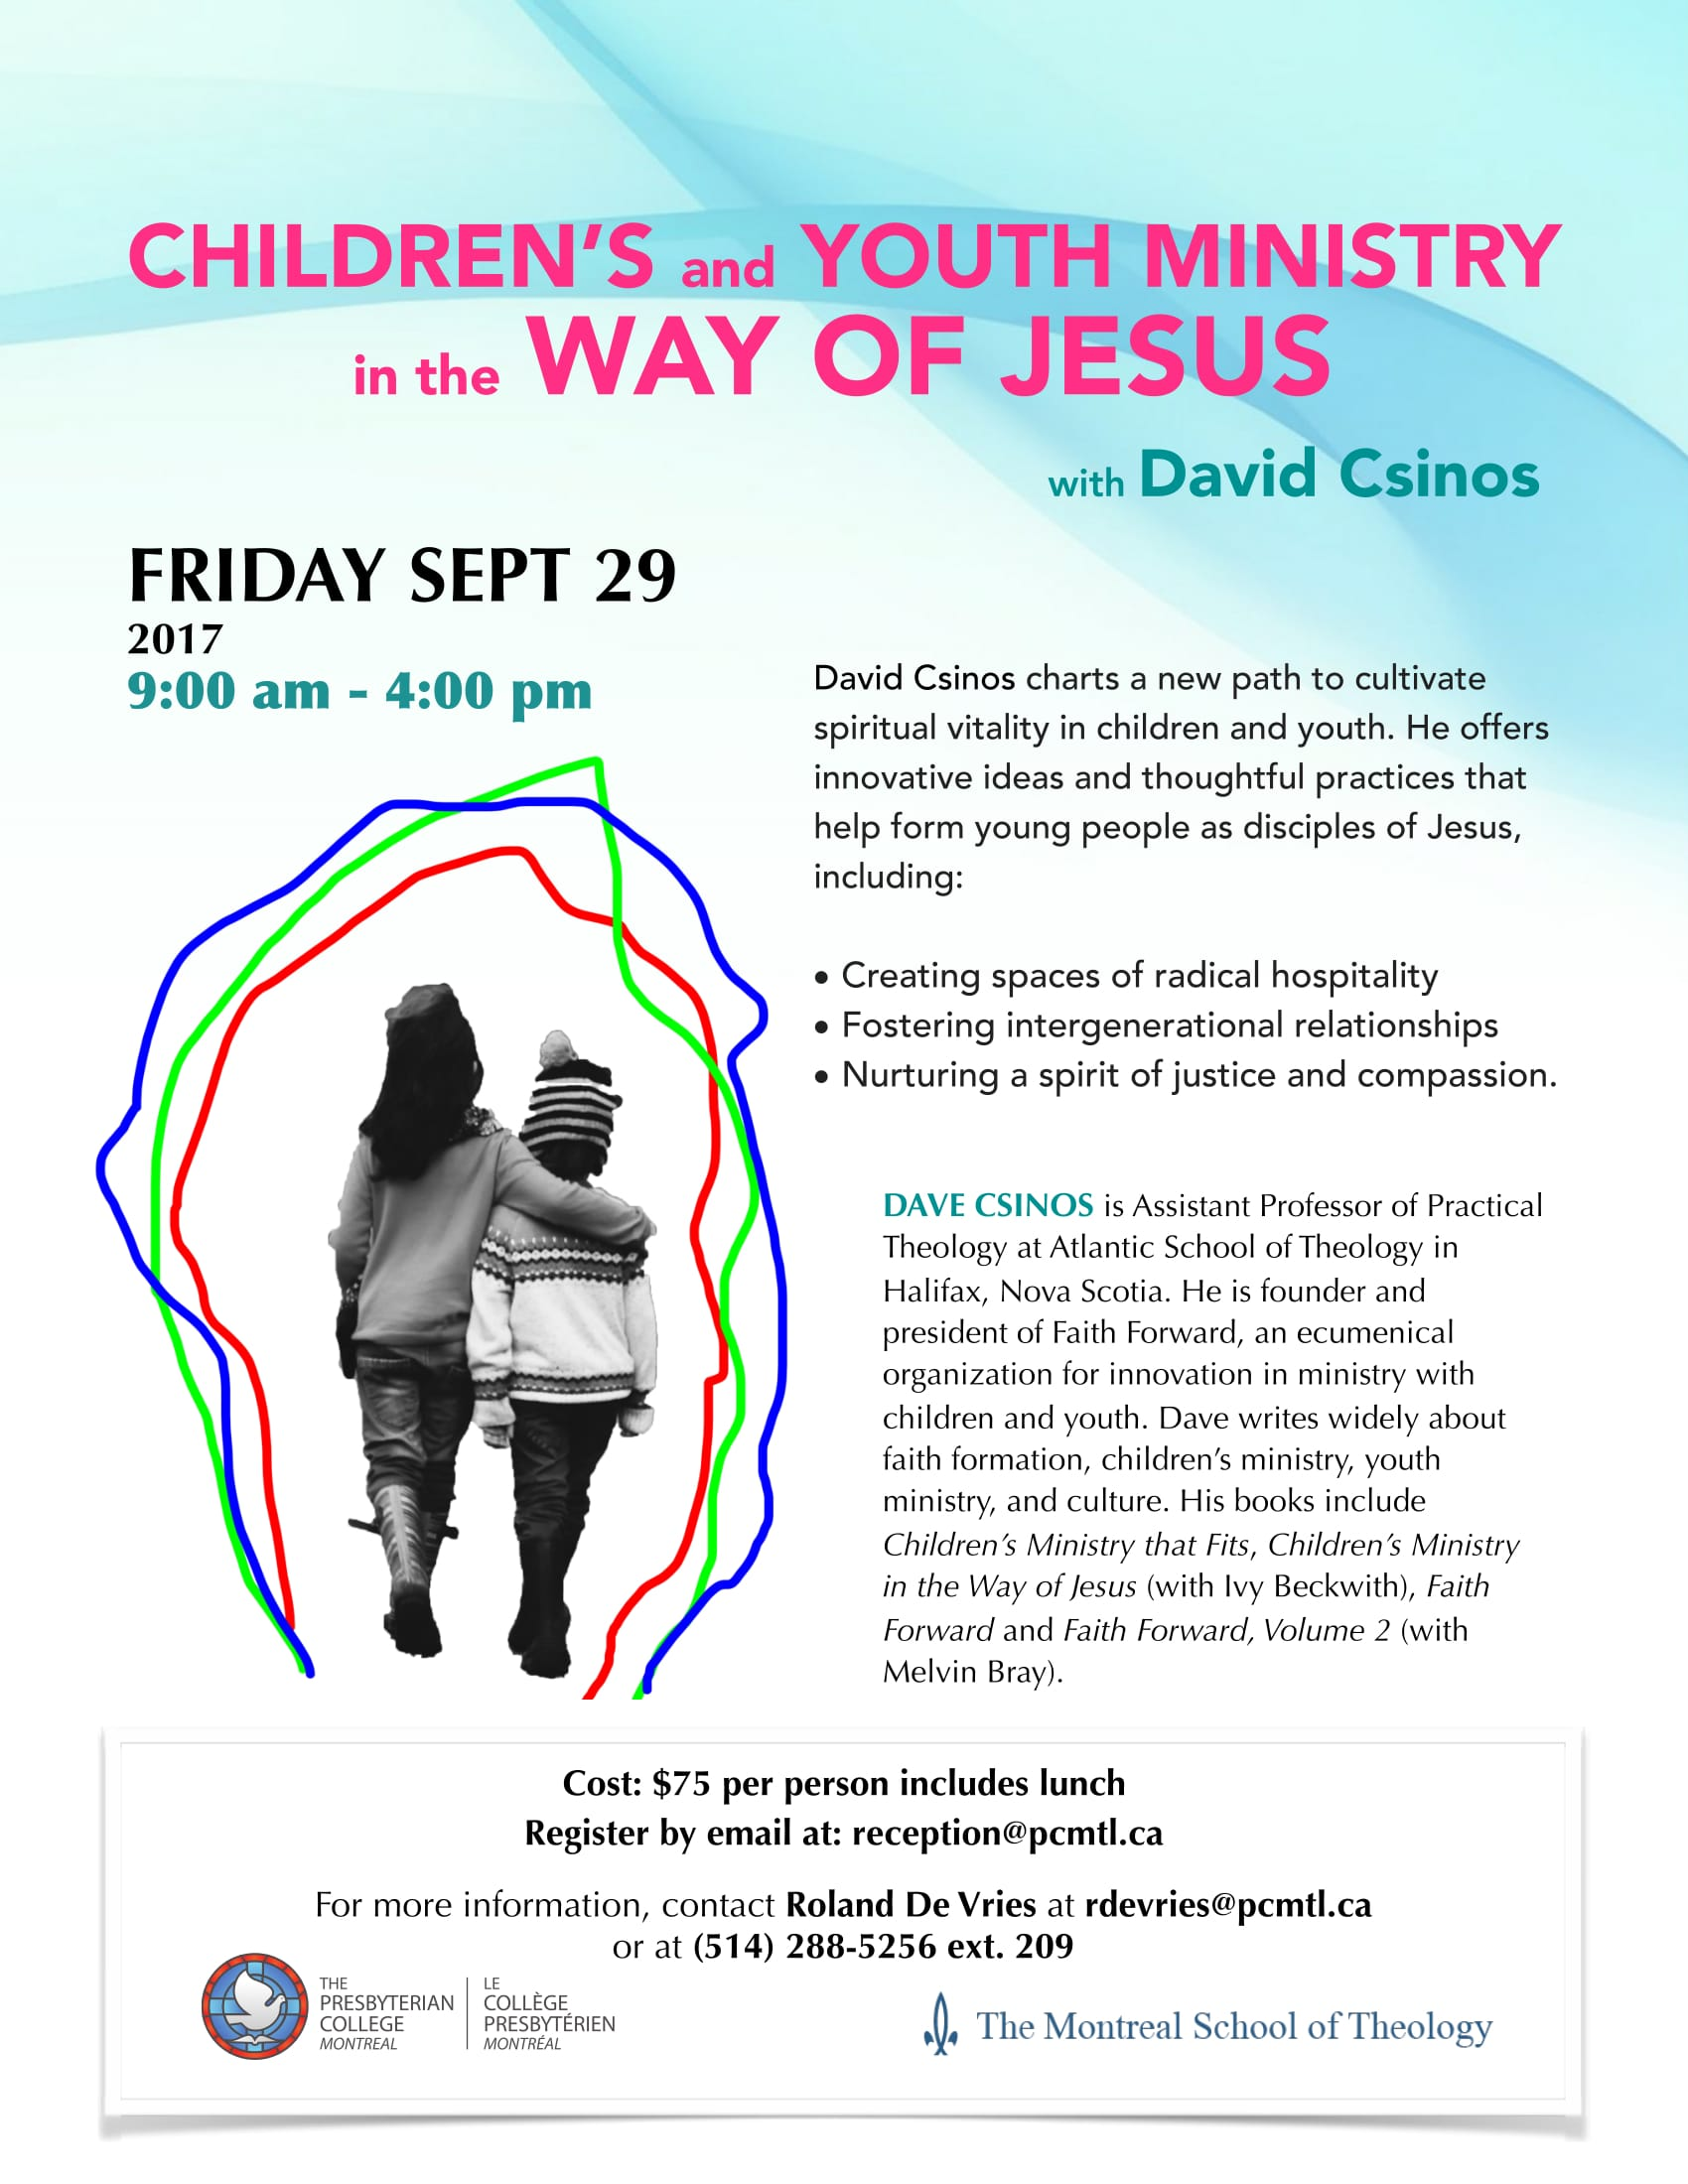 Workshop - CHILDREN'S and YOUTH MINISTRY in the WAY OF JESUS with David Csinos